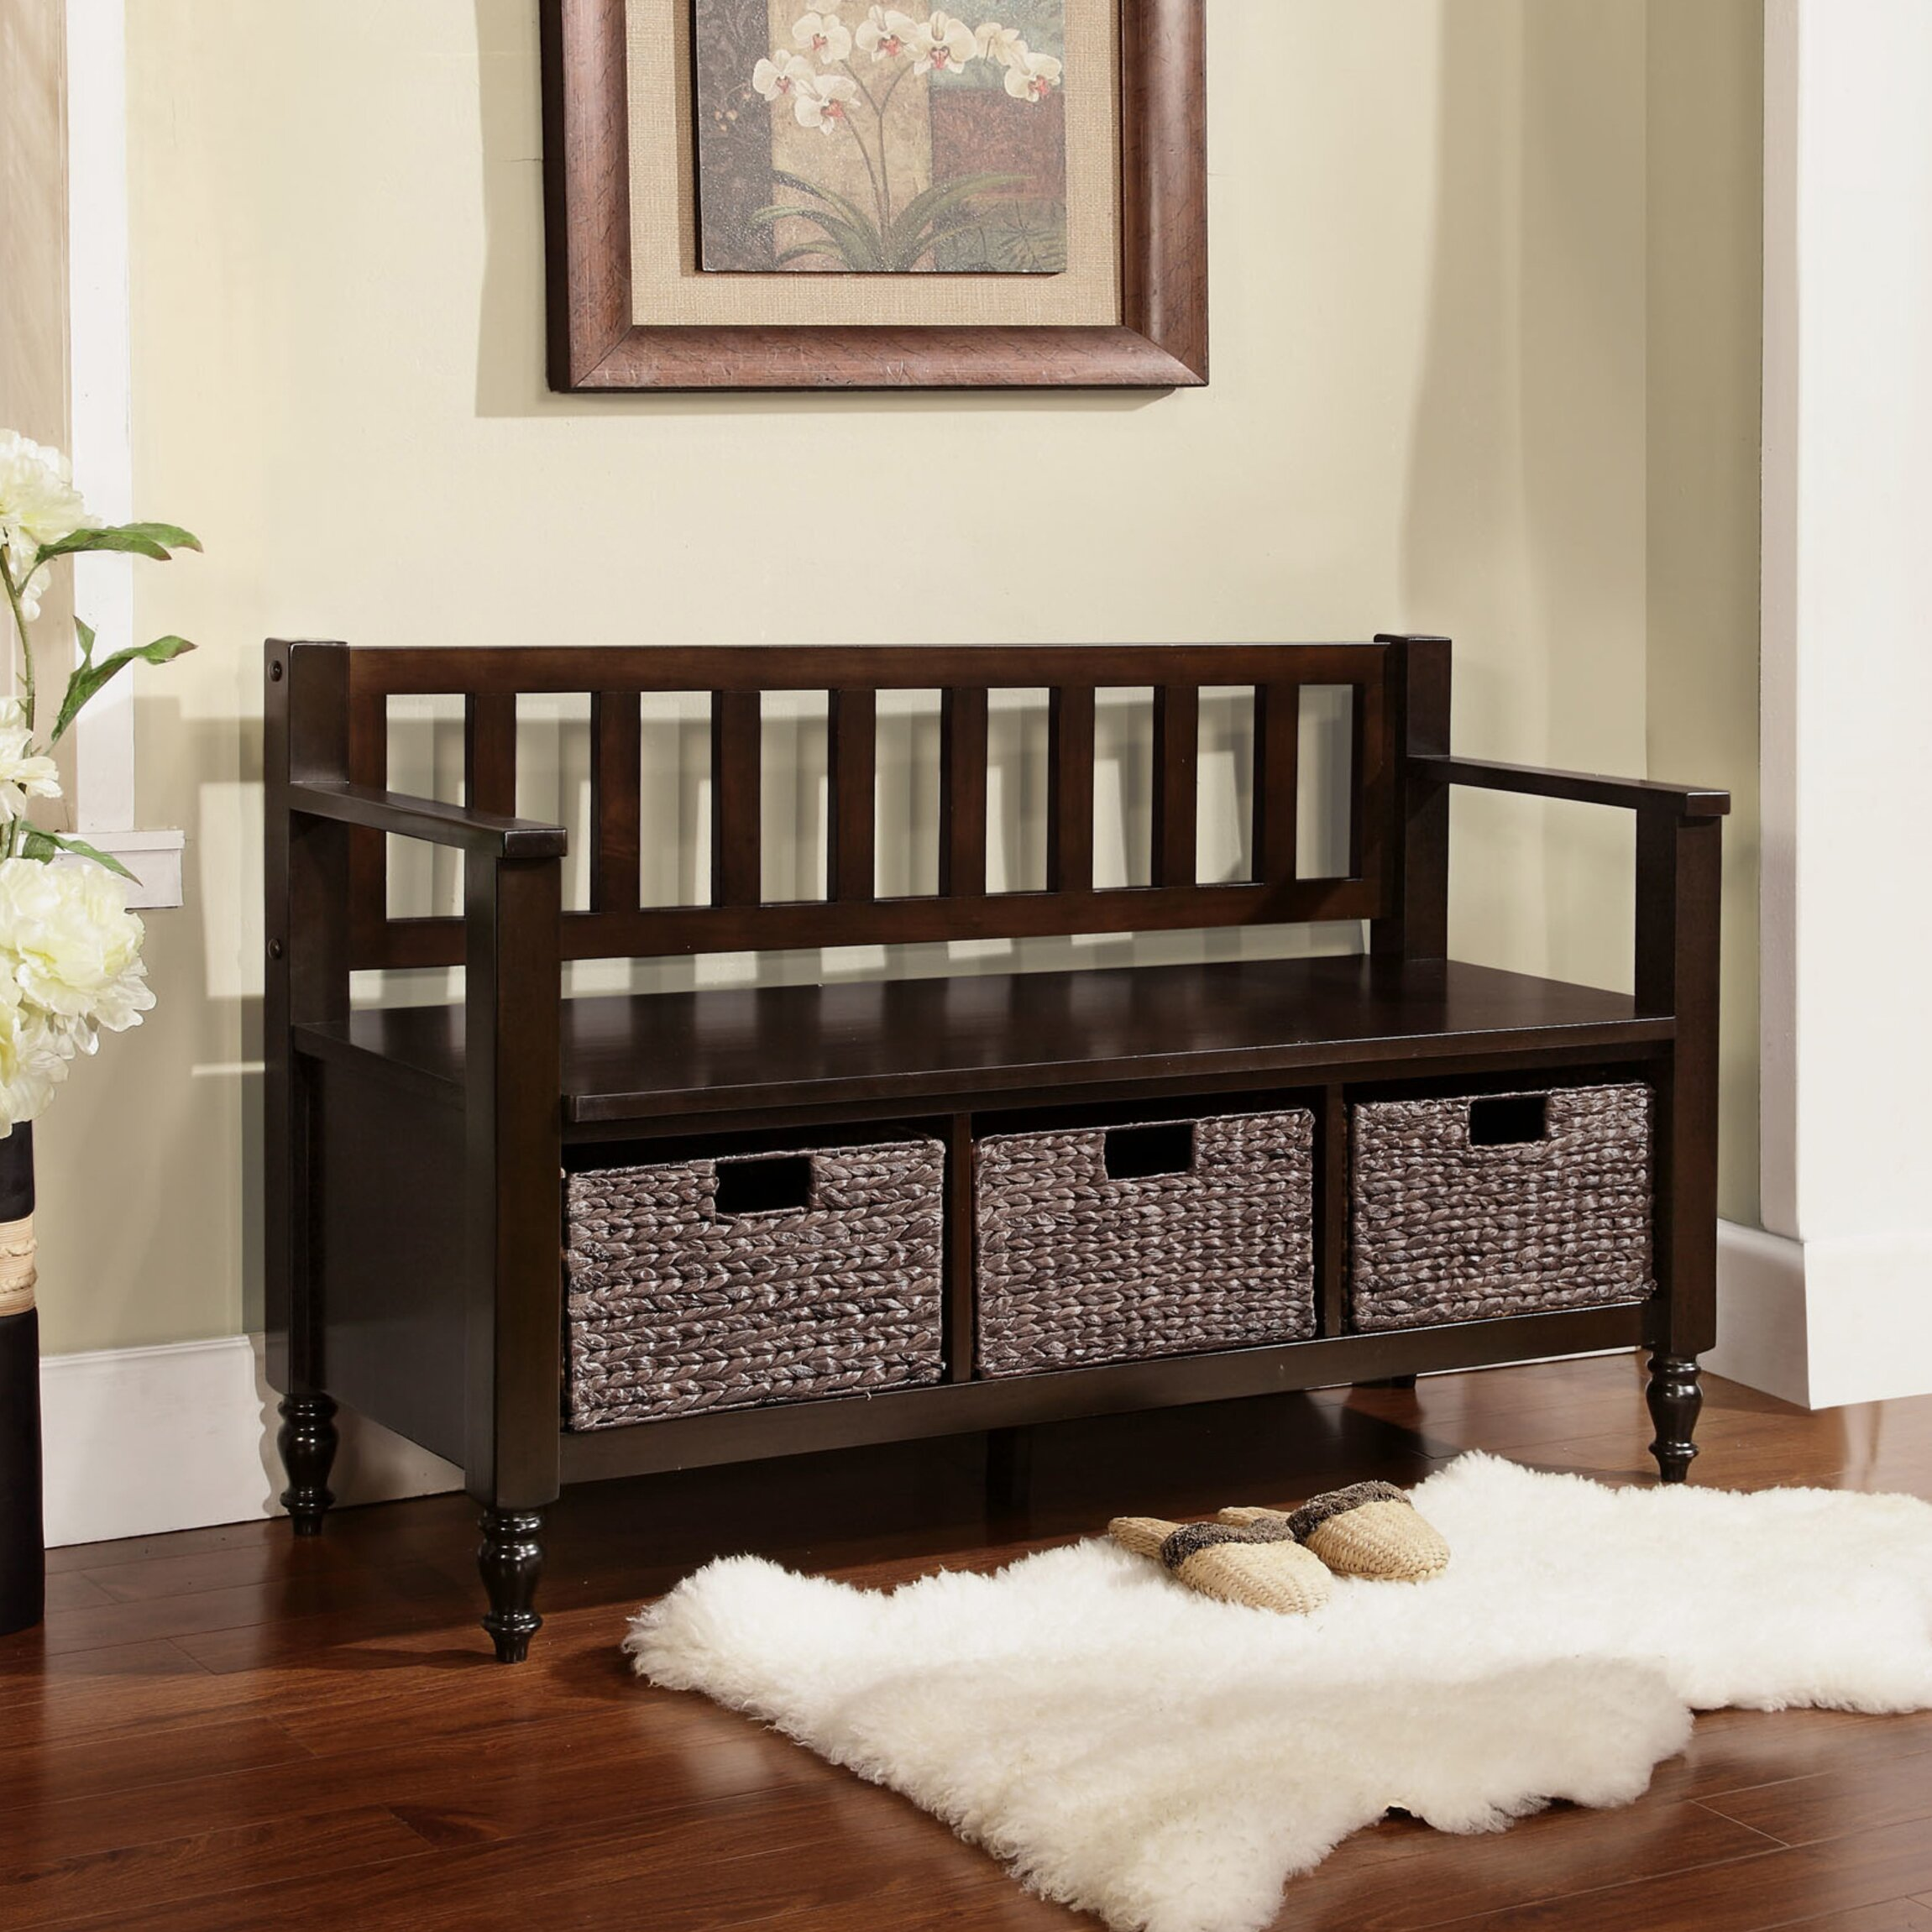 Hallway Entry Decorating Ideas: Simpli Home Dakota Entryway Bench & Reviews